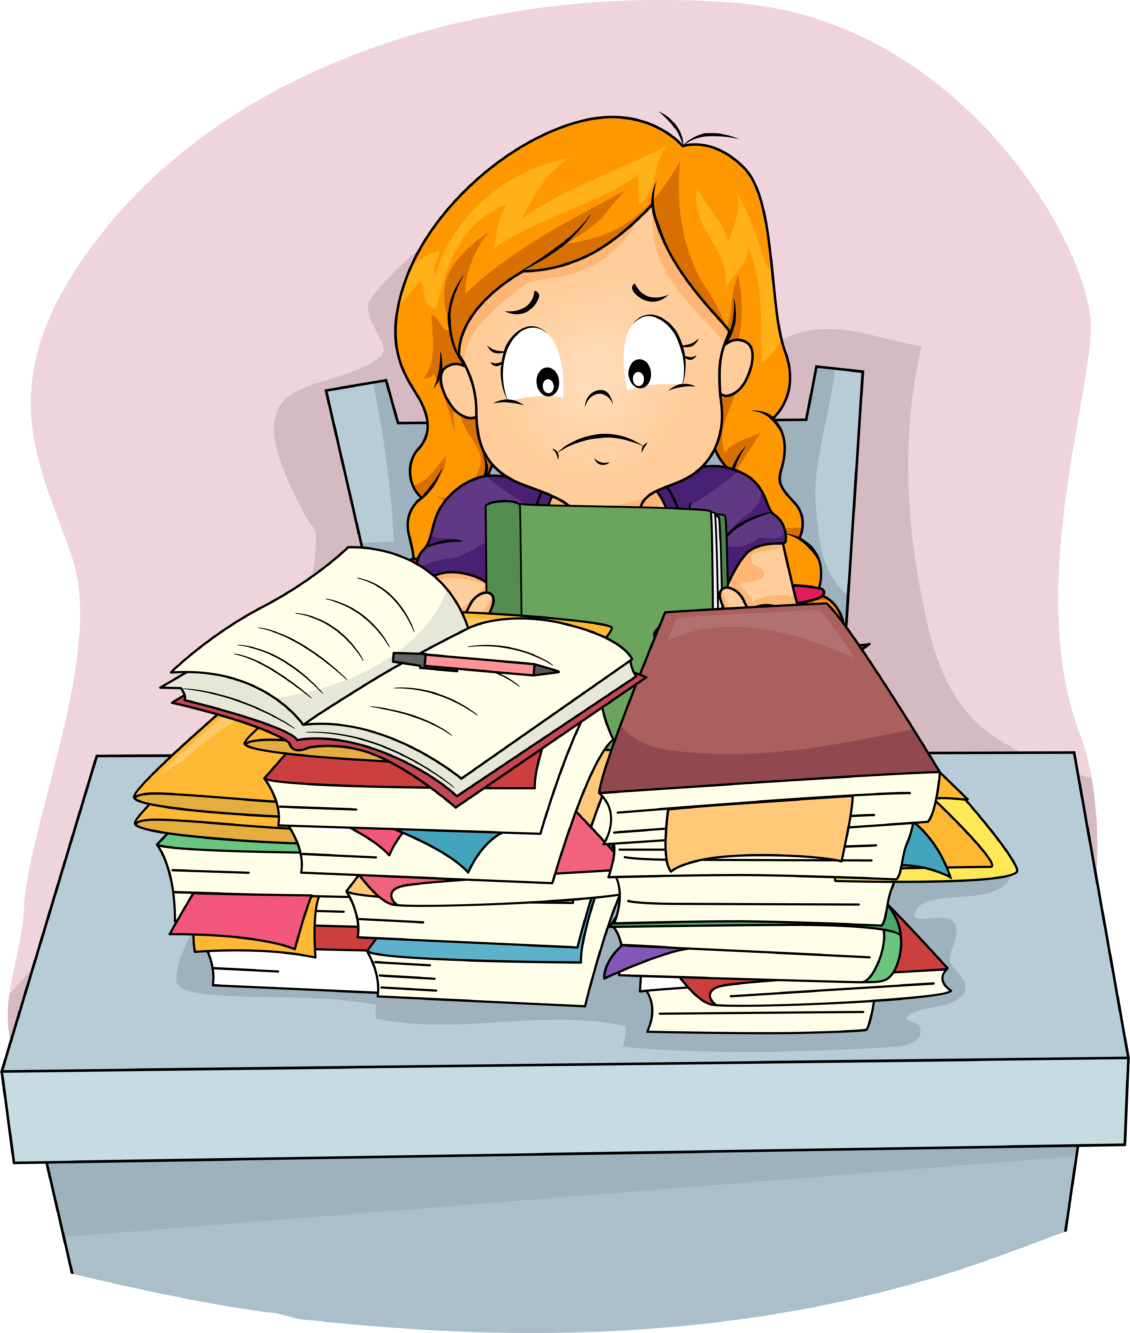 Girl sitting behind stacks of books looking confused